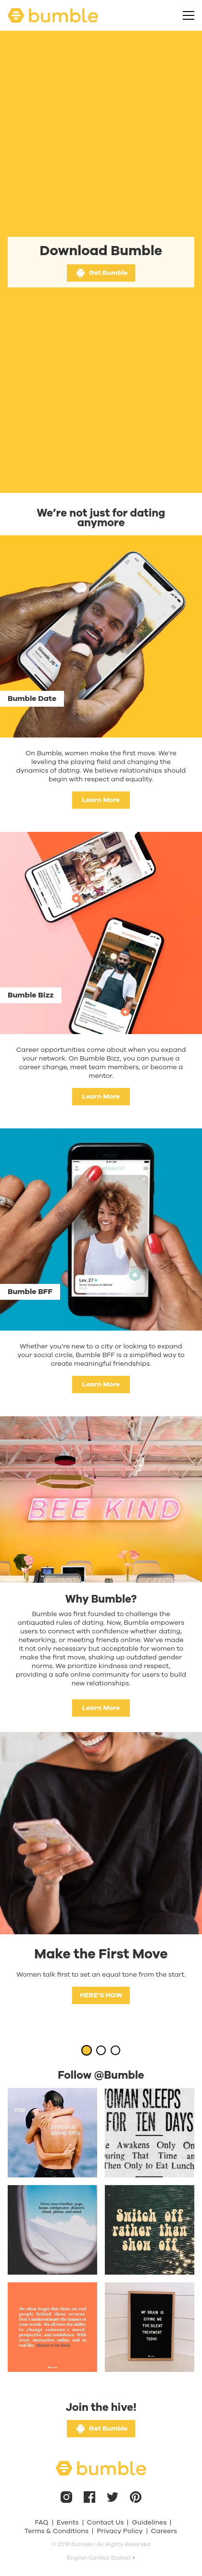 Example of Design for People & Society, Family & Relationships, Mobile Landing Page by bumble.com | Mobile Landing Page Design